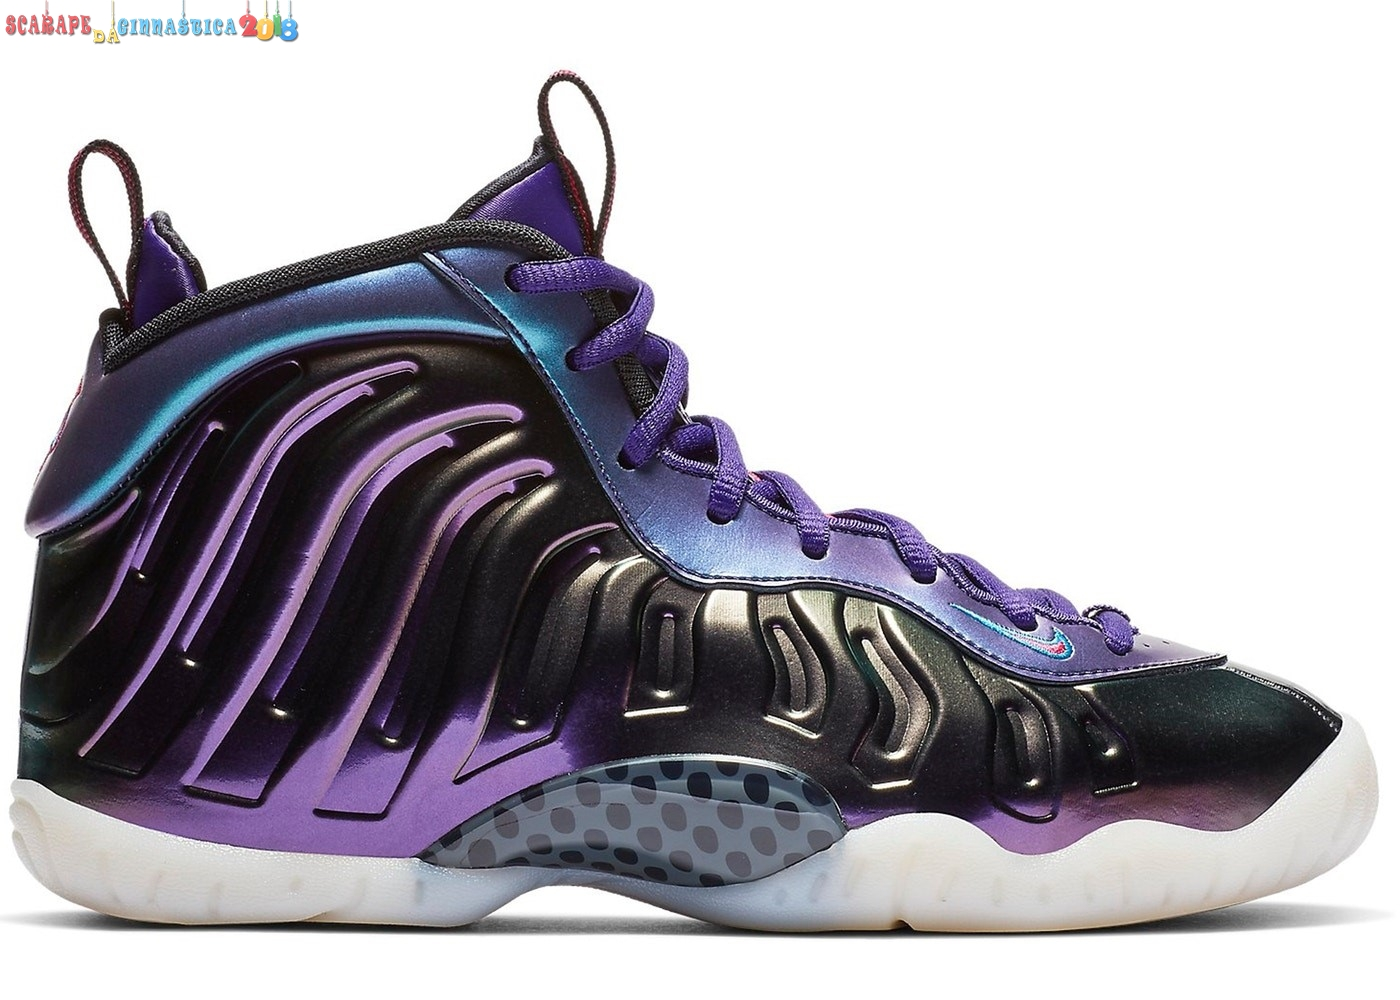 Anfernee Hardaway Best Basketball Shoes For Sale 2019-2020